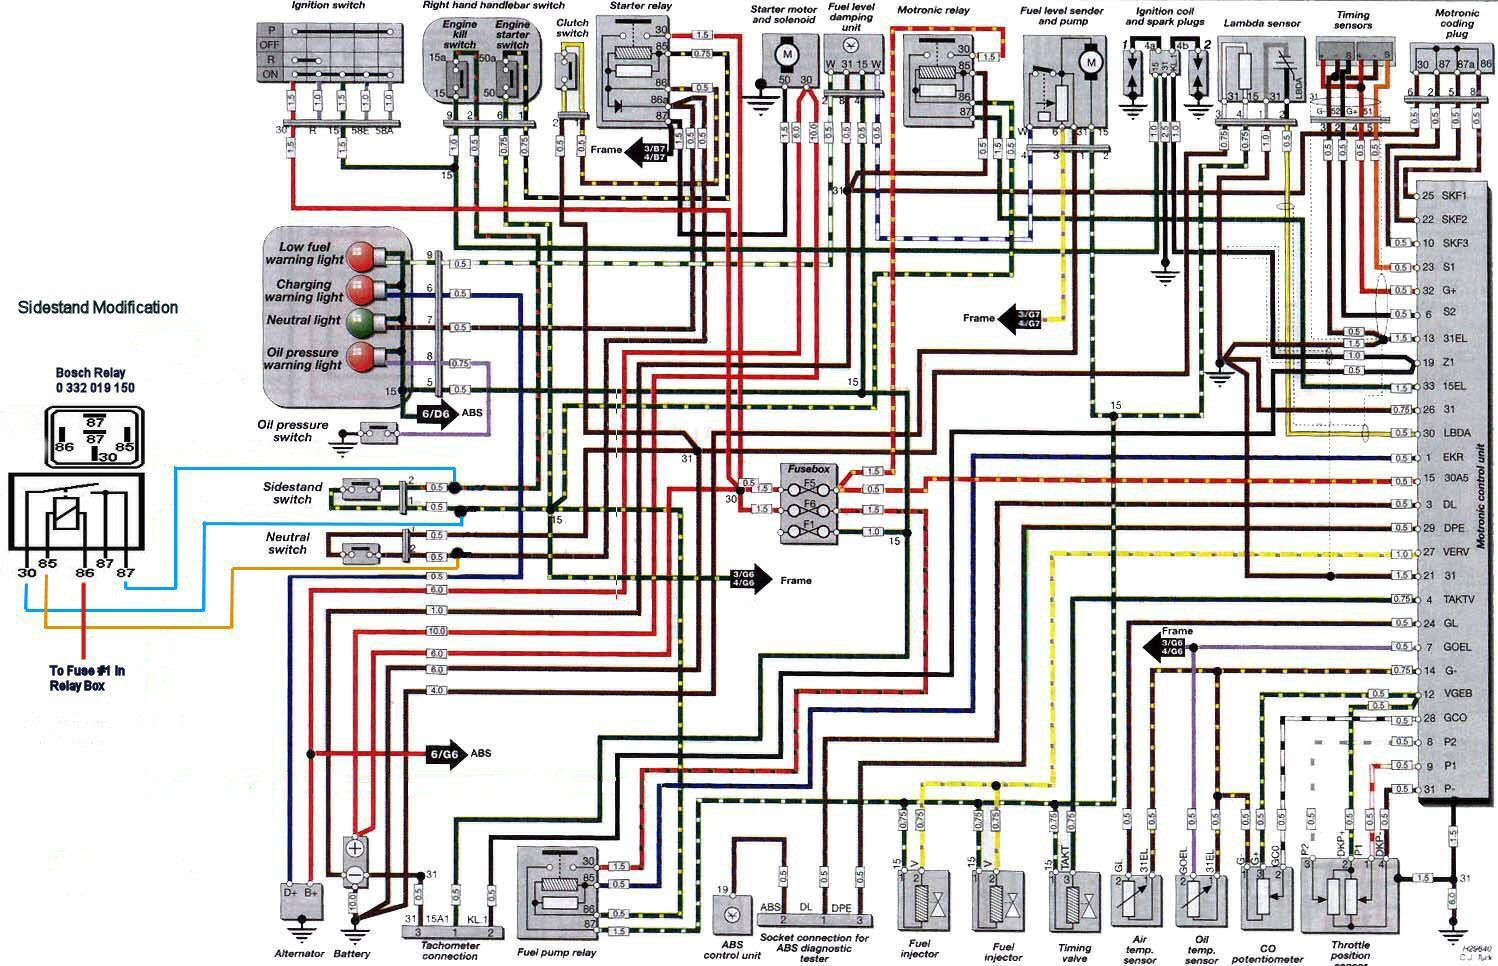 Tremendous Bmw R1150R Electrical Wiring Diagram 1 Bmv Electrical Wiring Wiring Cloud Hisonuggs Outletorg